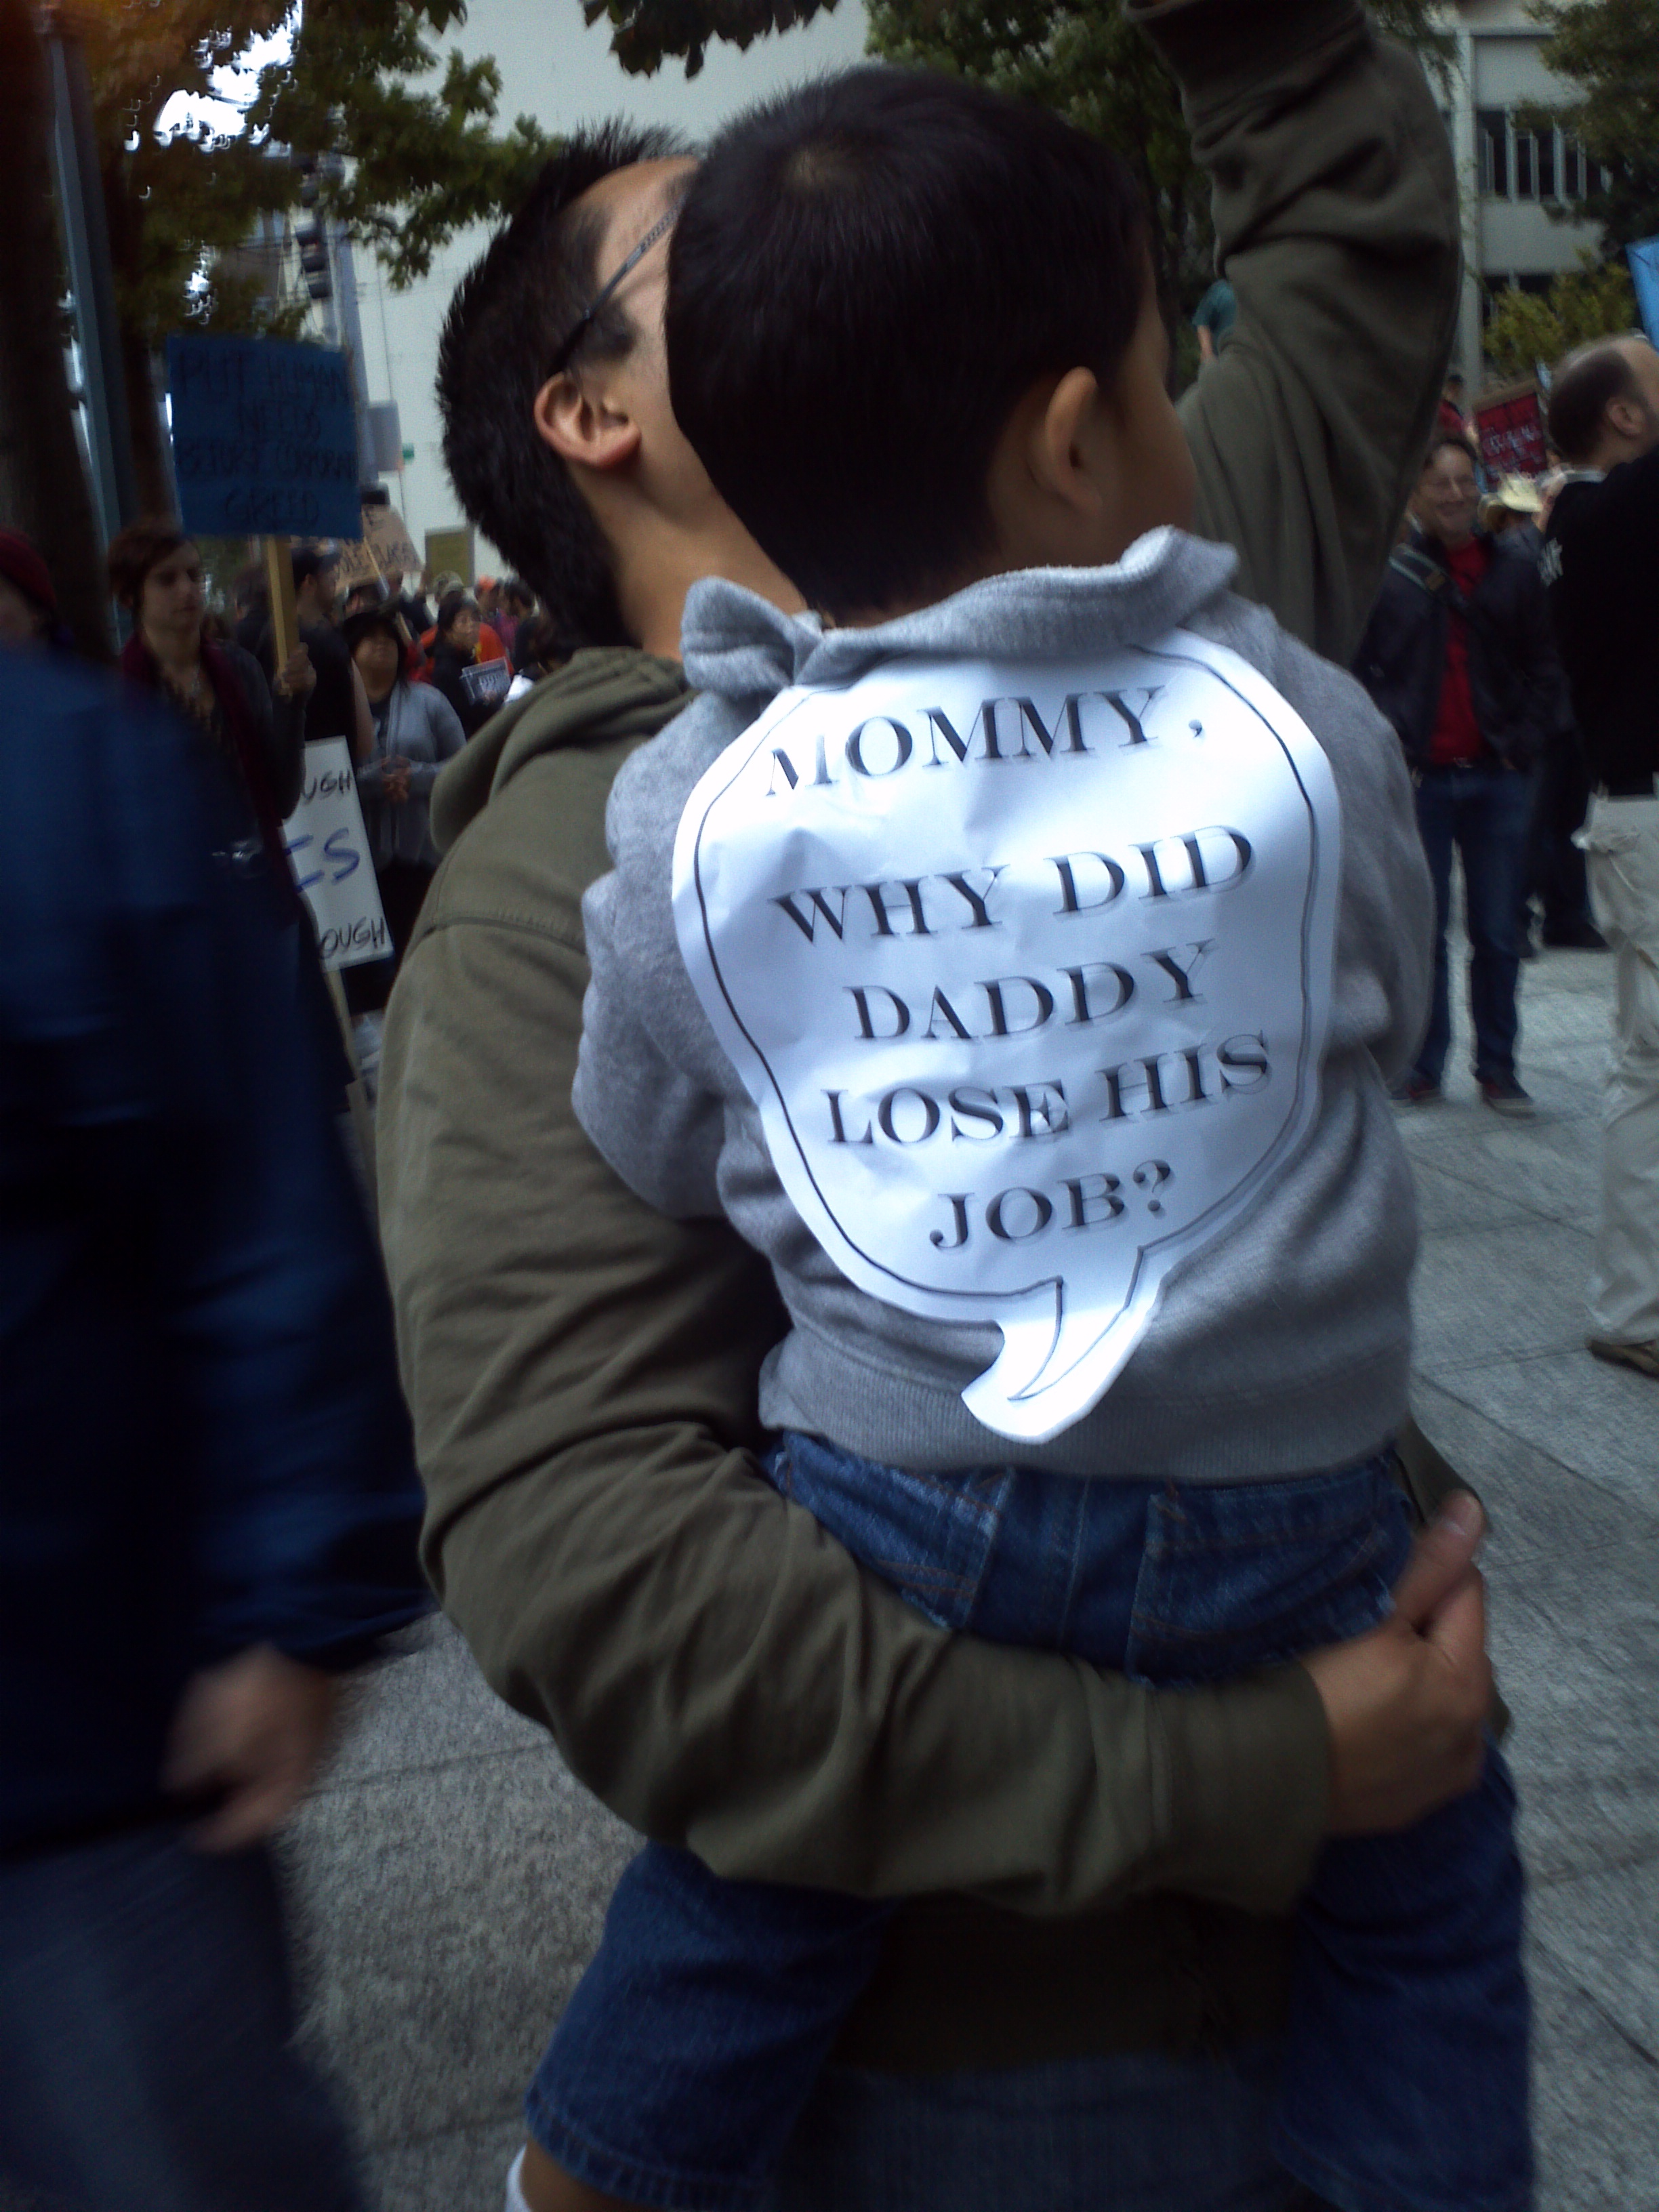 Father & Son at Westlake Plaza during the Occupy Seattle! Rally & March on Saturday 8 October 2011. Foto by William Bass.